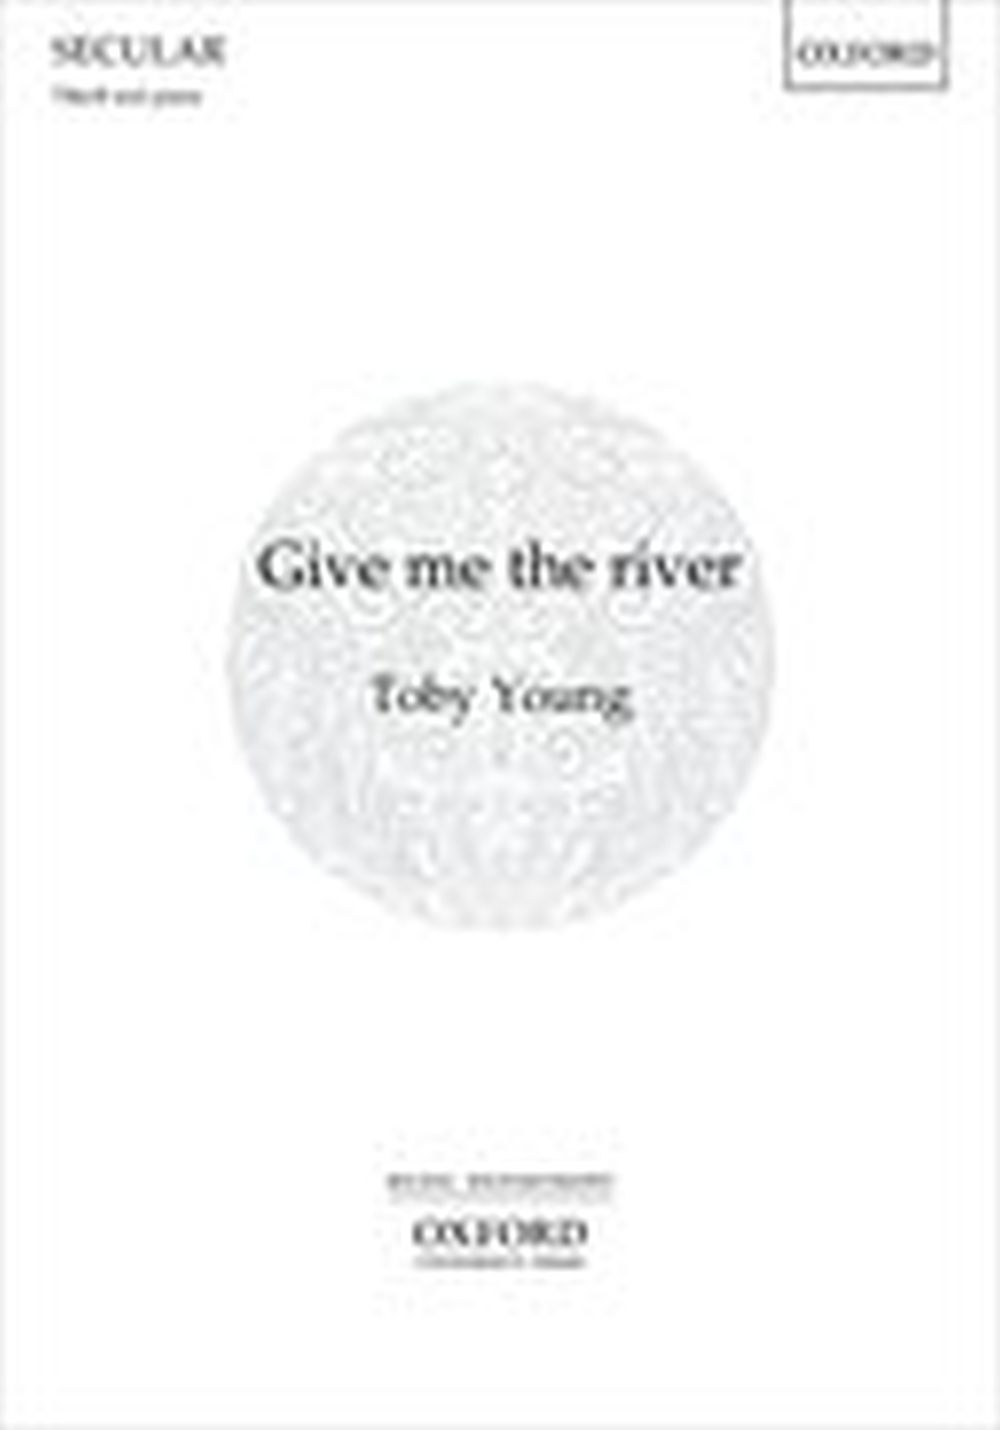 Toby Young: Give me the river: Men's Voices: Vocal Score